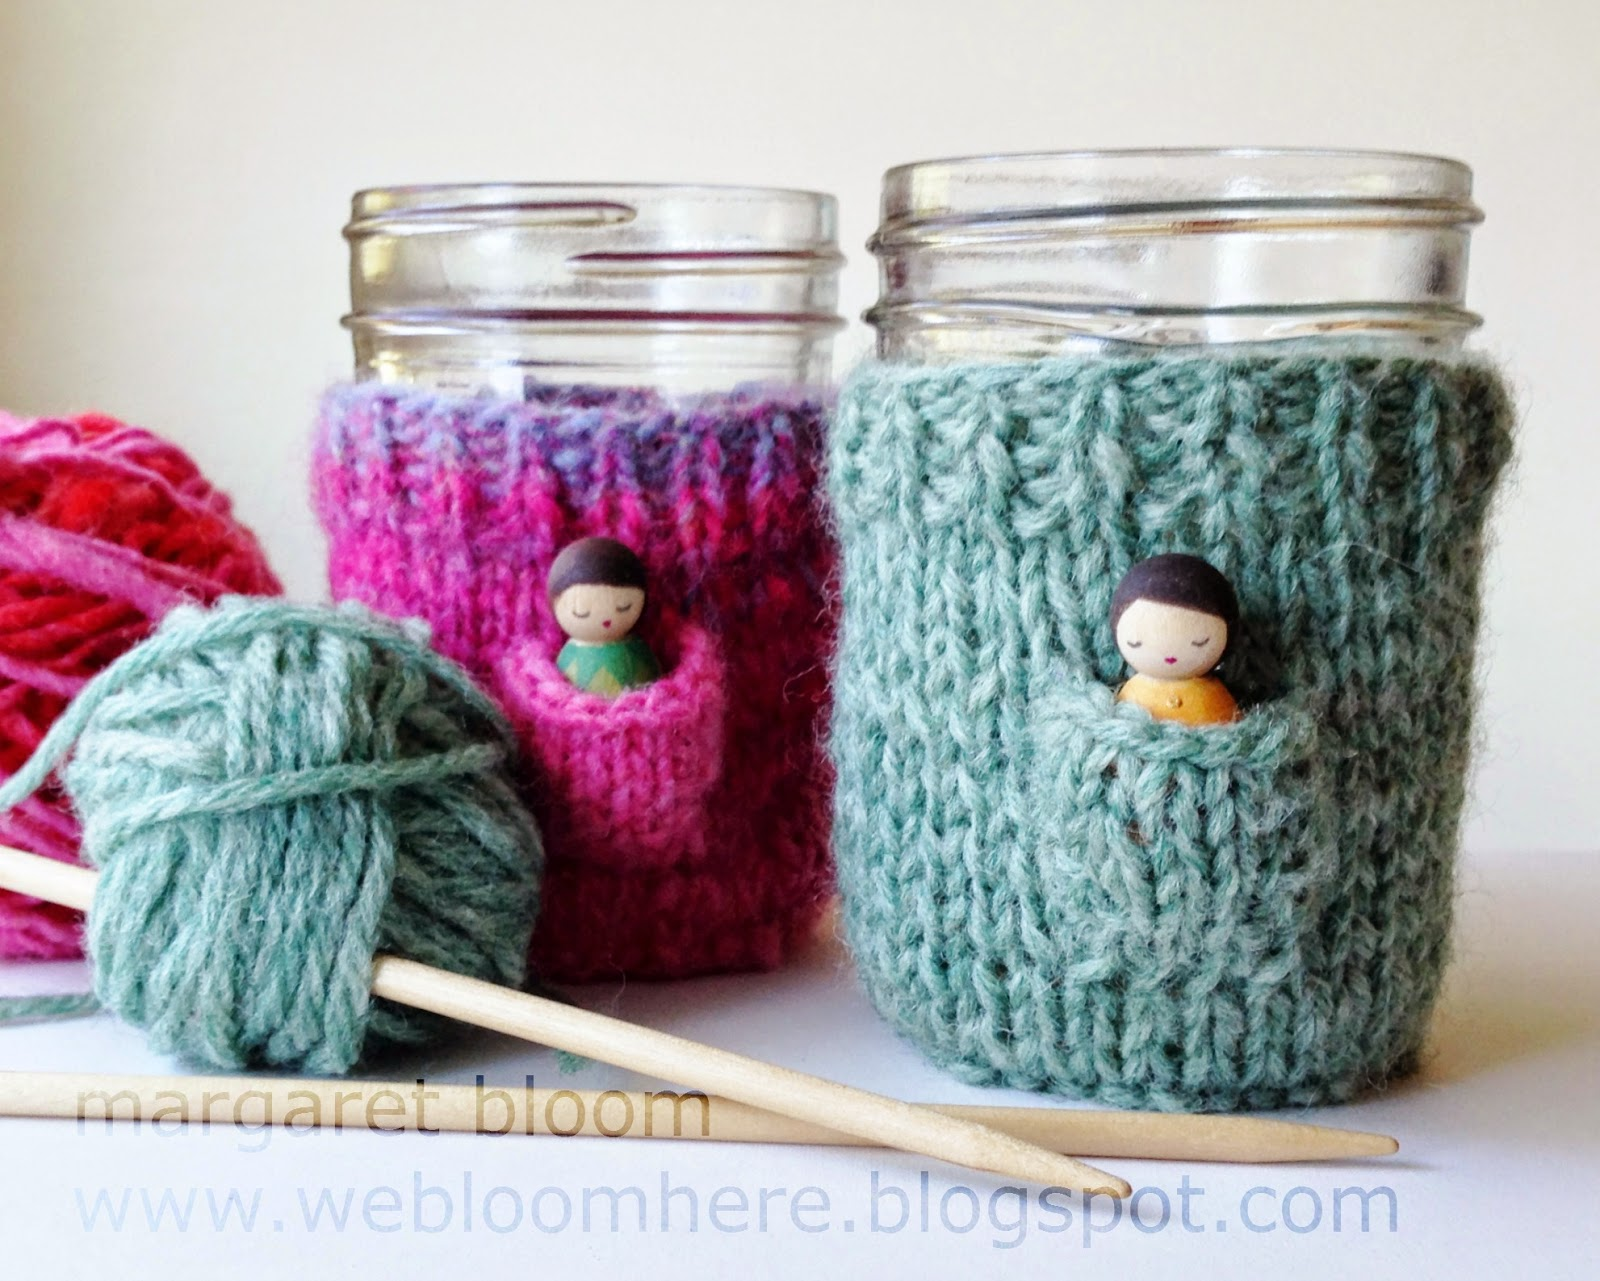 http://webloomhere.blogspot.com/2014/11/knitting-fairy-cup-cozy.html